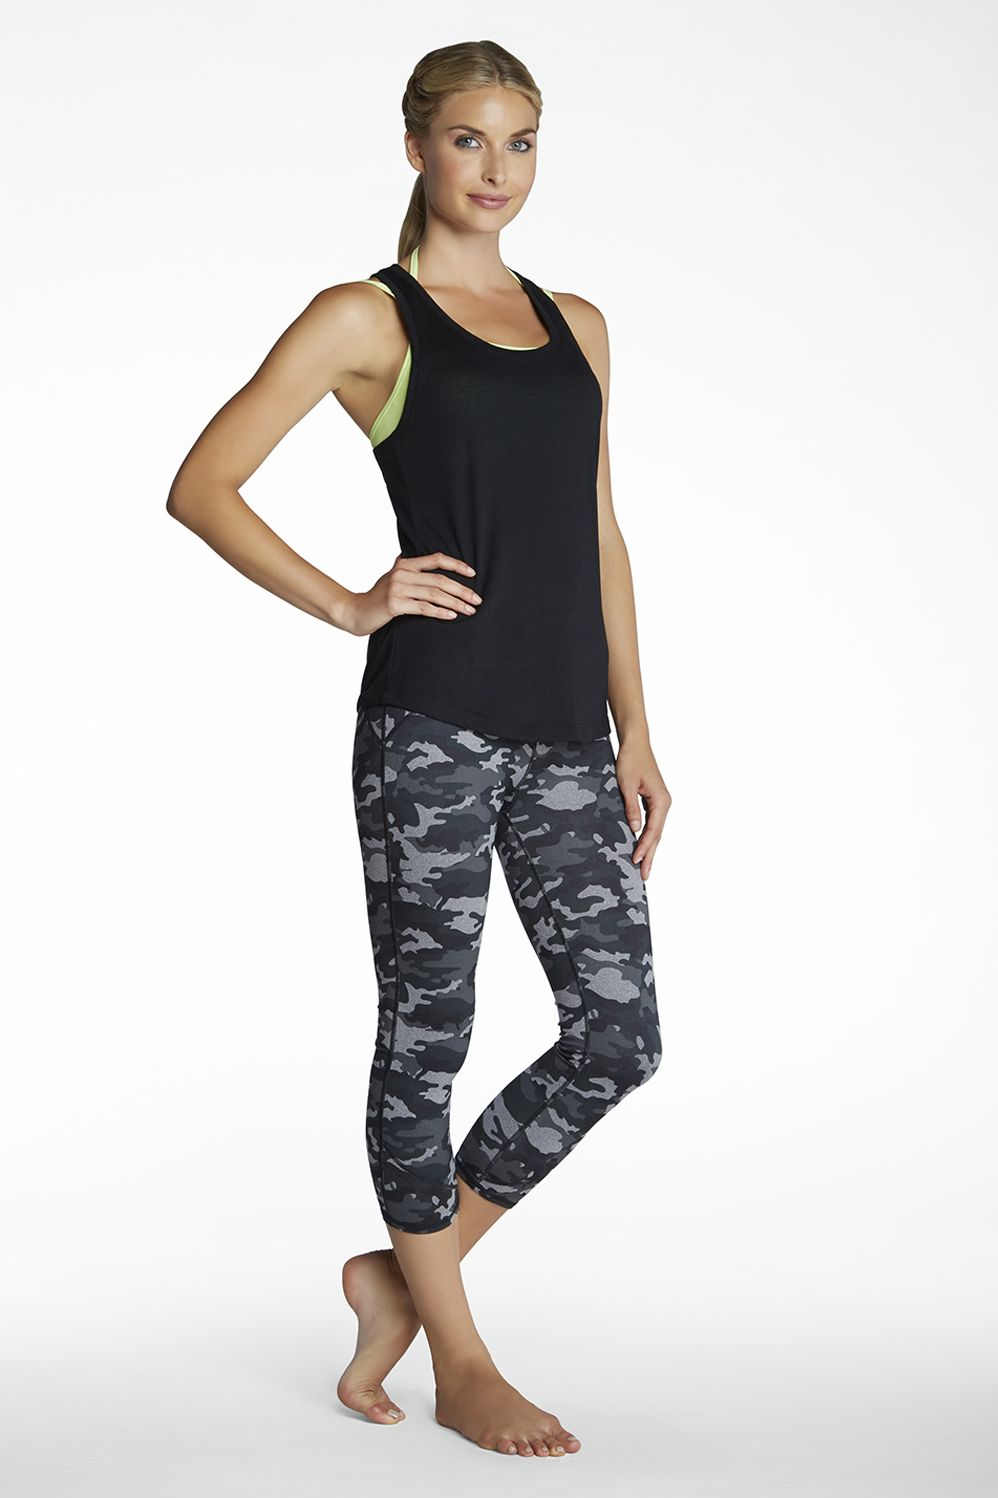 Fabletics outfit. Other colours available. #Fabletics and